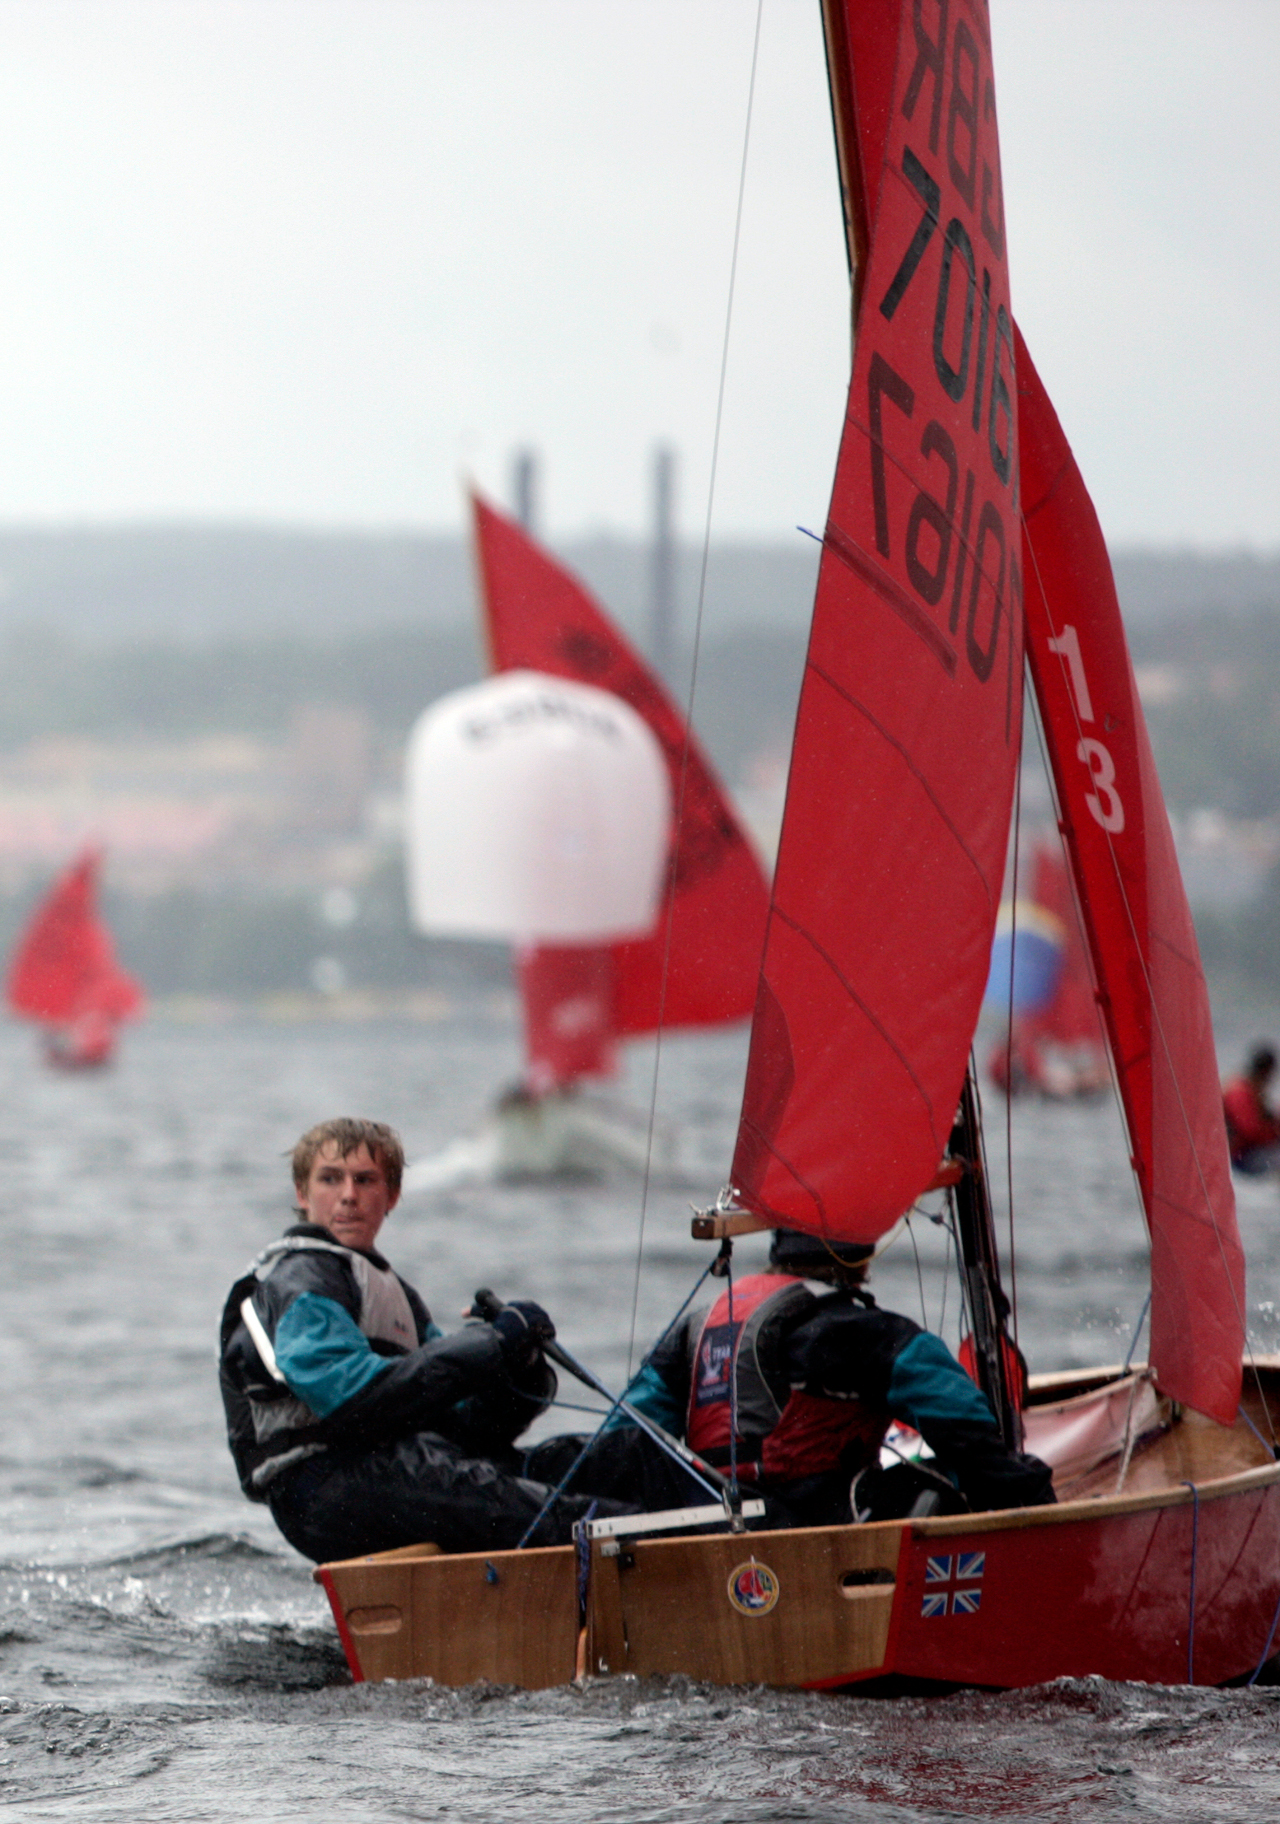 A red Mirror dinghy racing with helm looking to see if he can tack